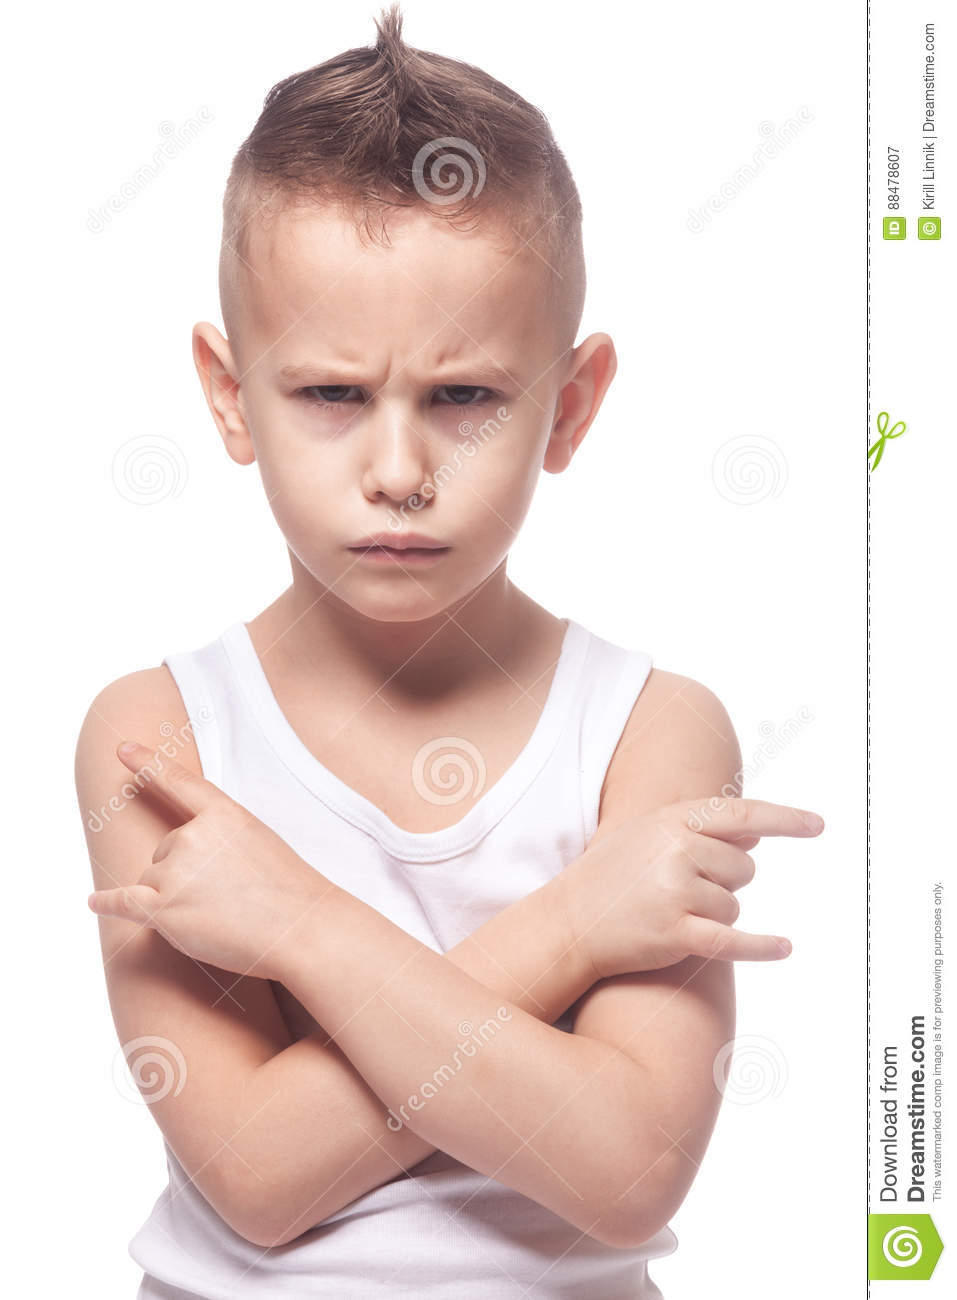 Download Angry punk boy stock image. Image of metal, fighter, angry - 88478607